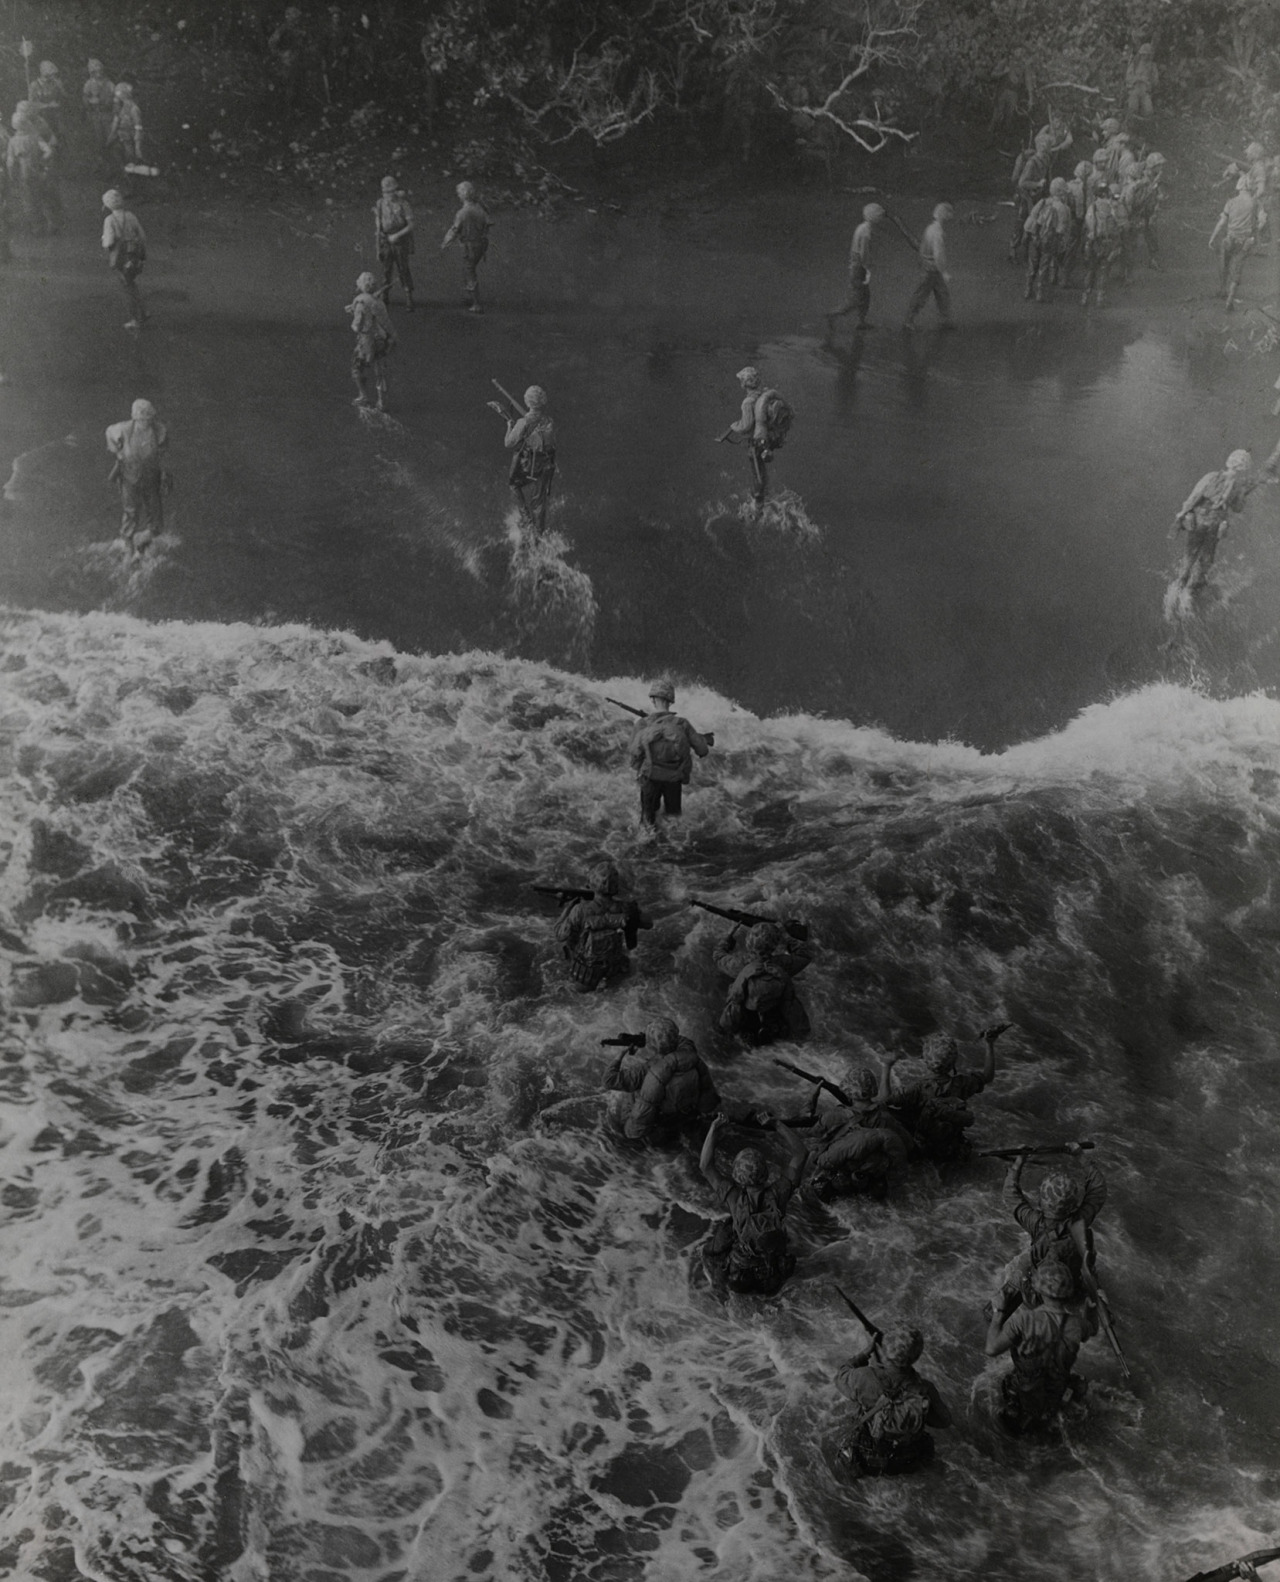 the-marines-land-marines-hit-three-feet-of-rough-water-as-they-leave-their-lst-to-take-the-beach-at-cape-gloucester-december-26-1943